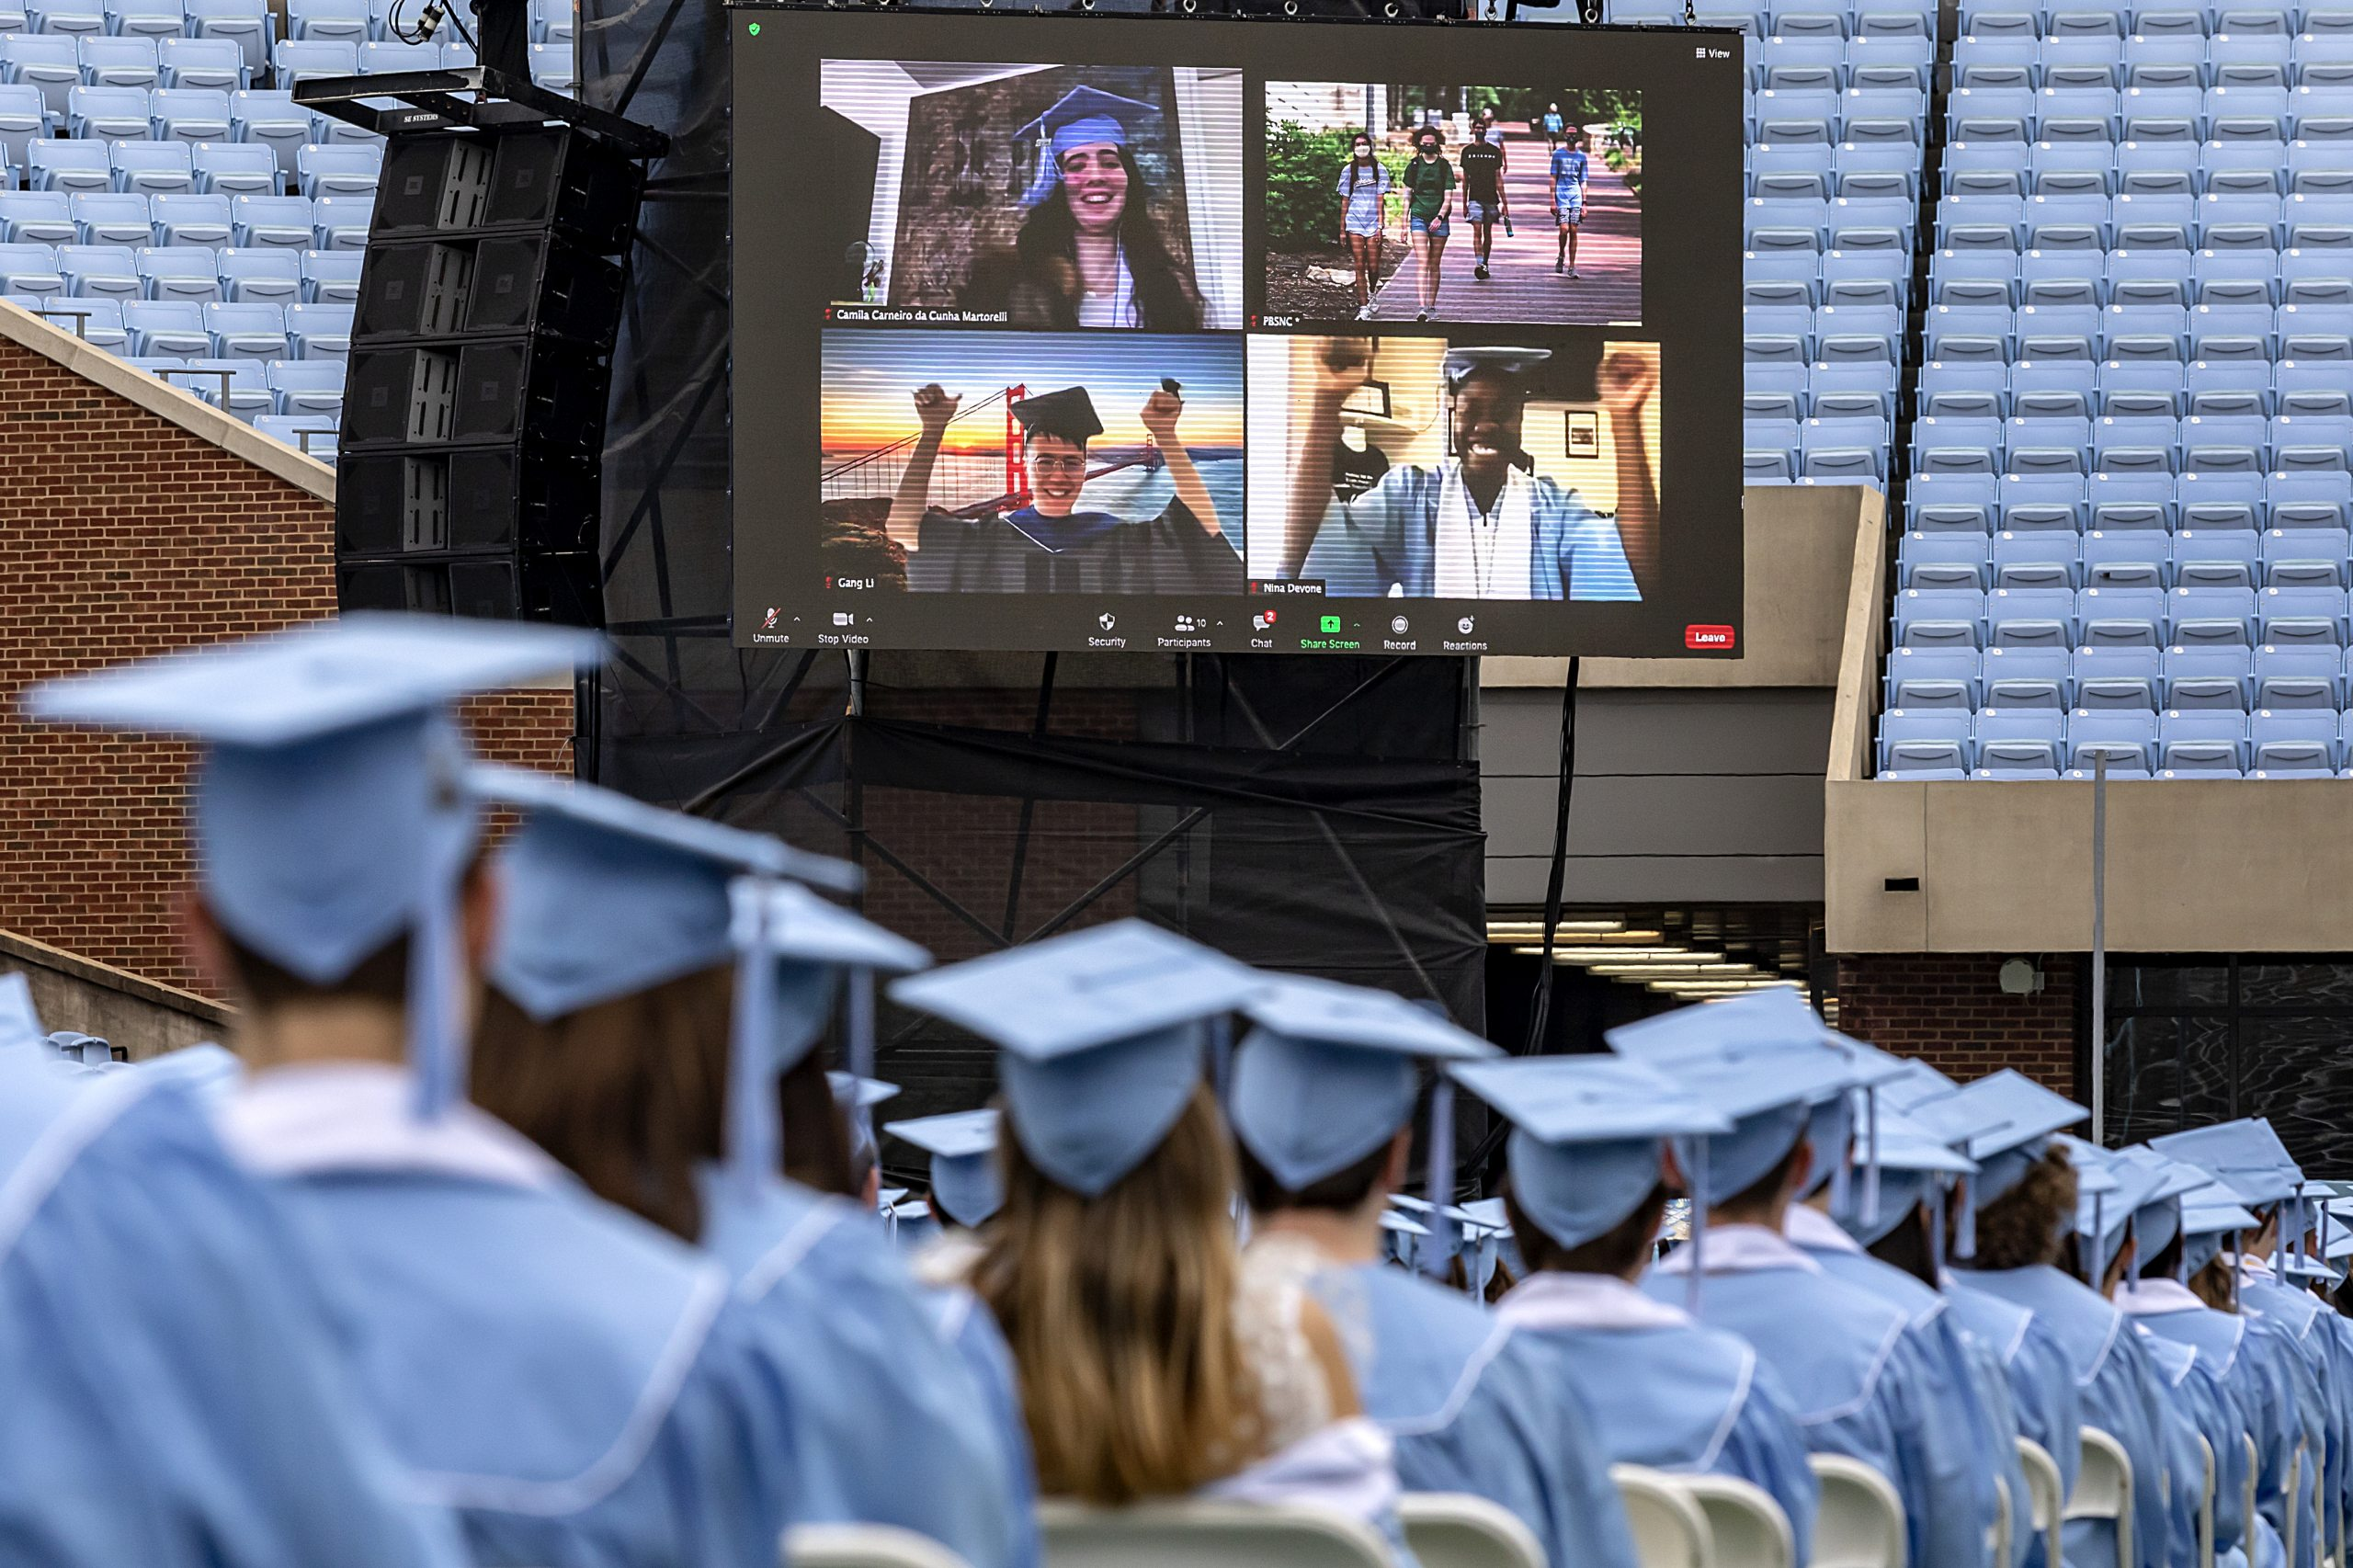 Students at sit graduation in Kenan Stadium, with a screen of people on Zoom above them.